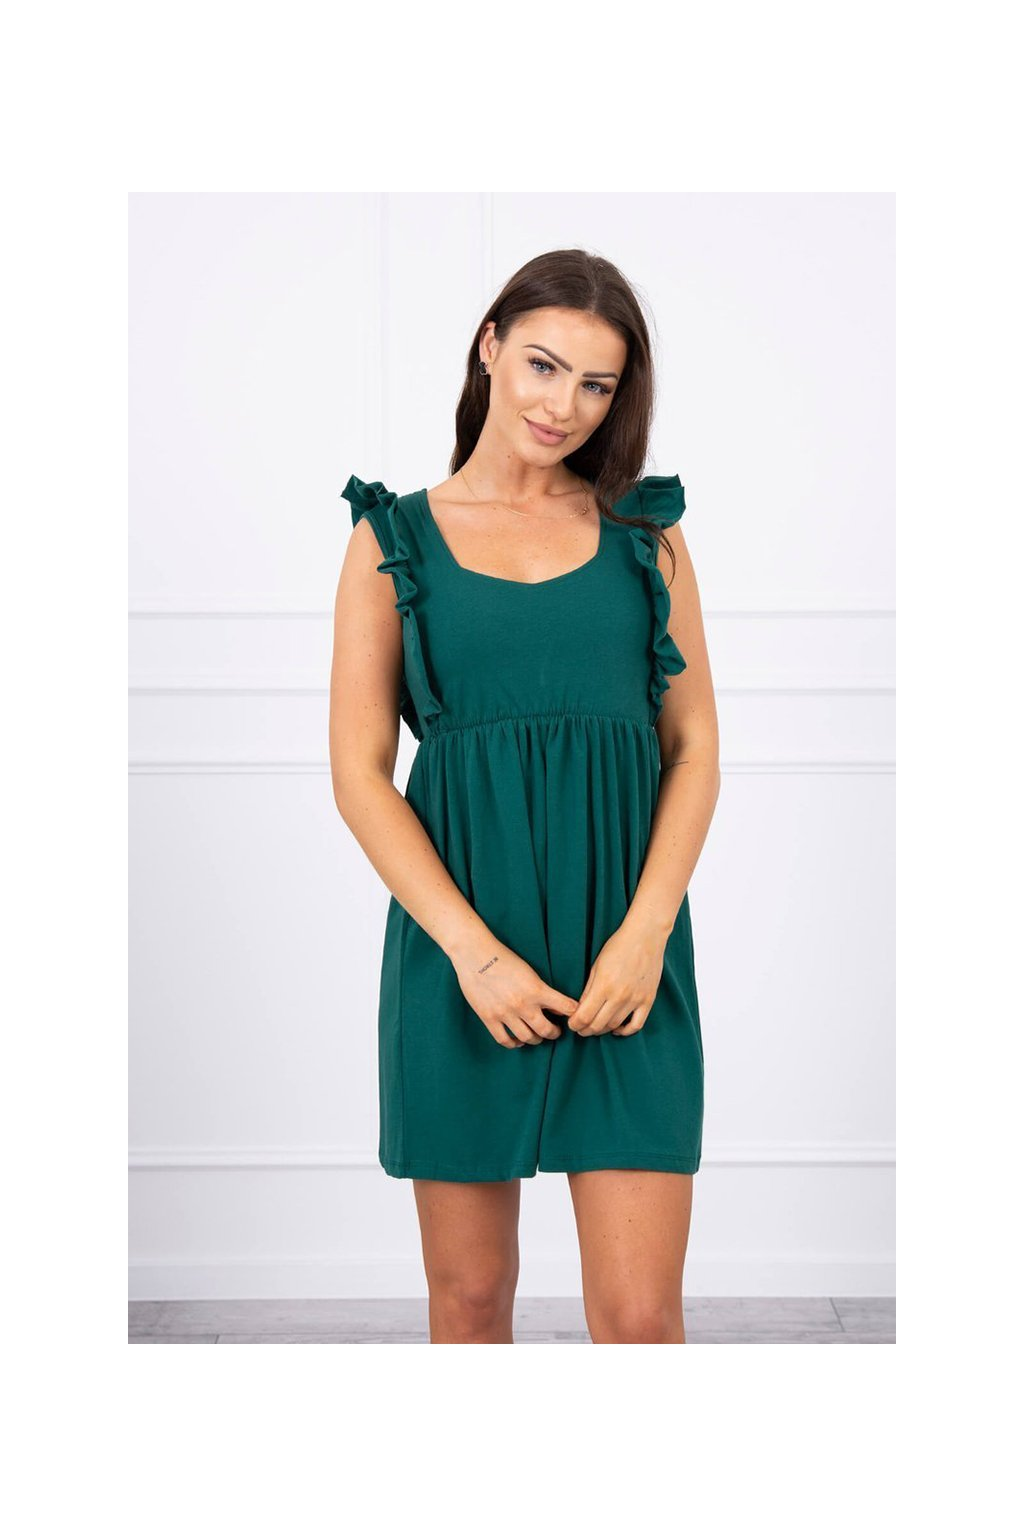 eng pl Dress with frills on the sides green 17657 2